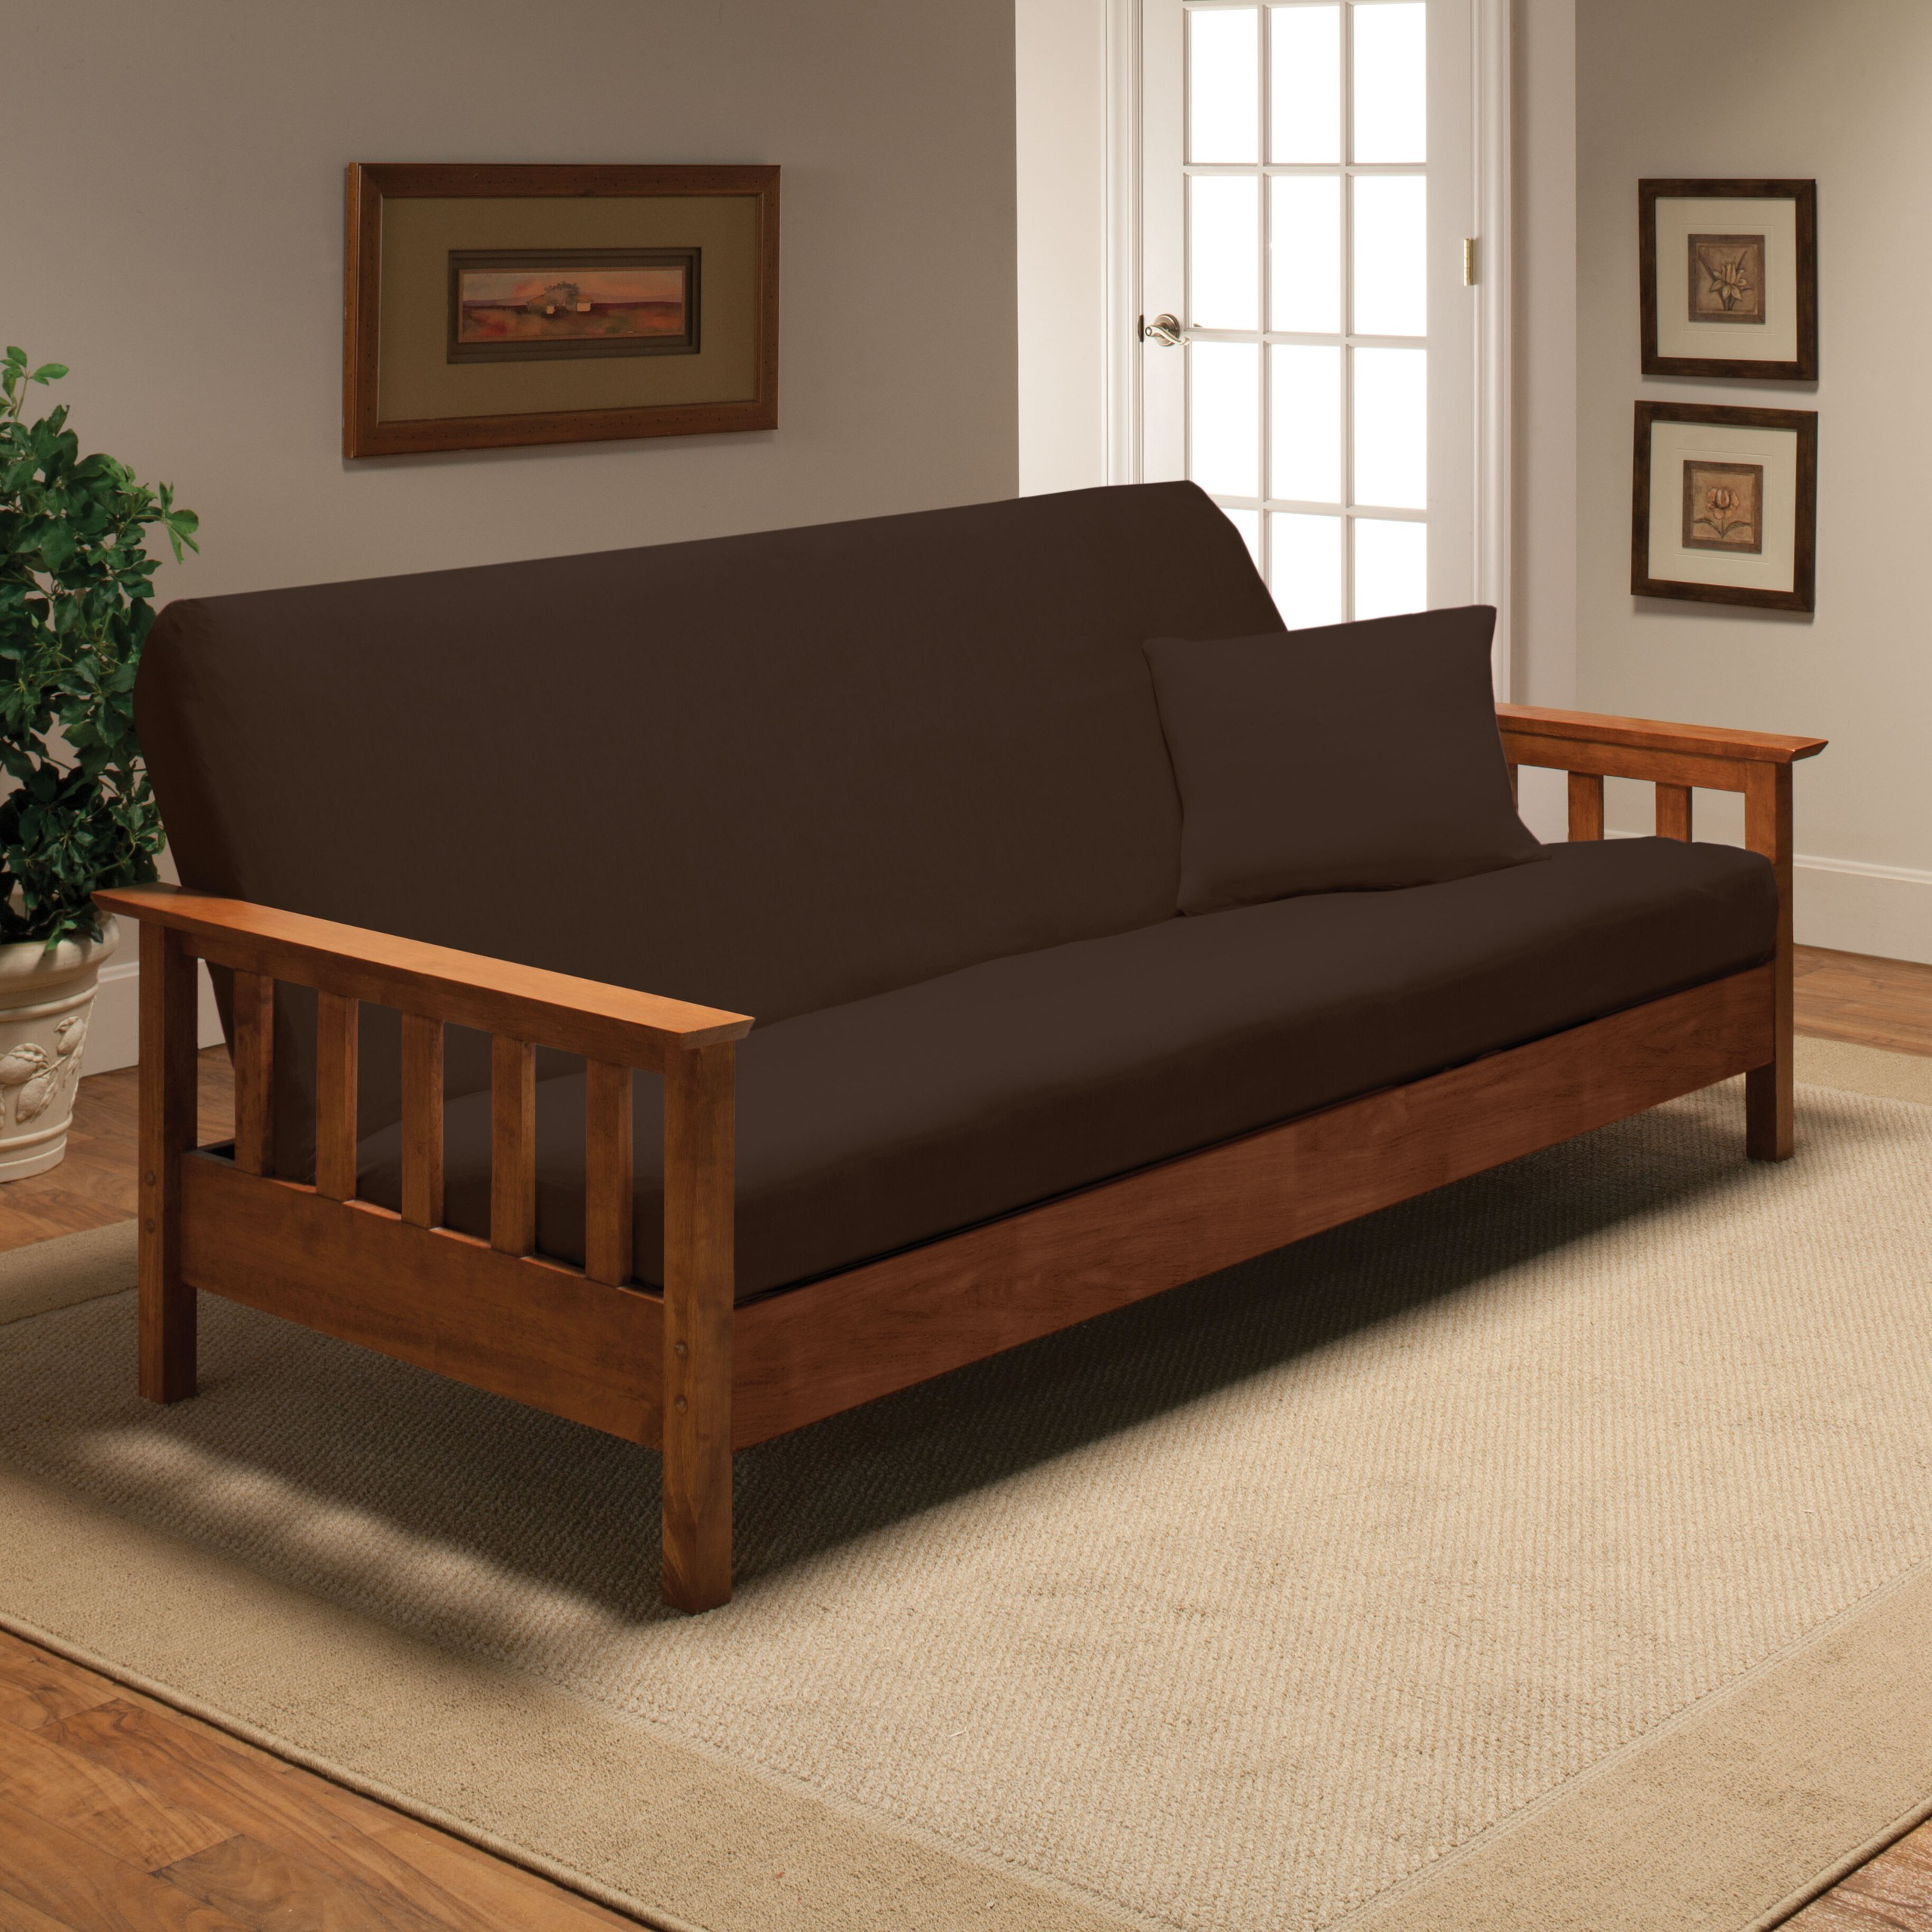 How To Choose A Futon Cover